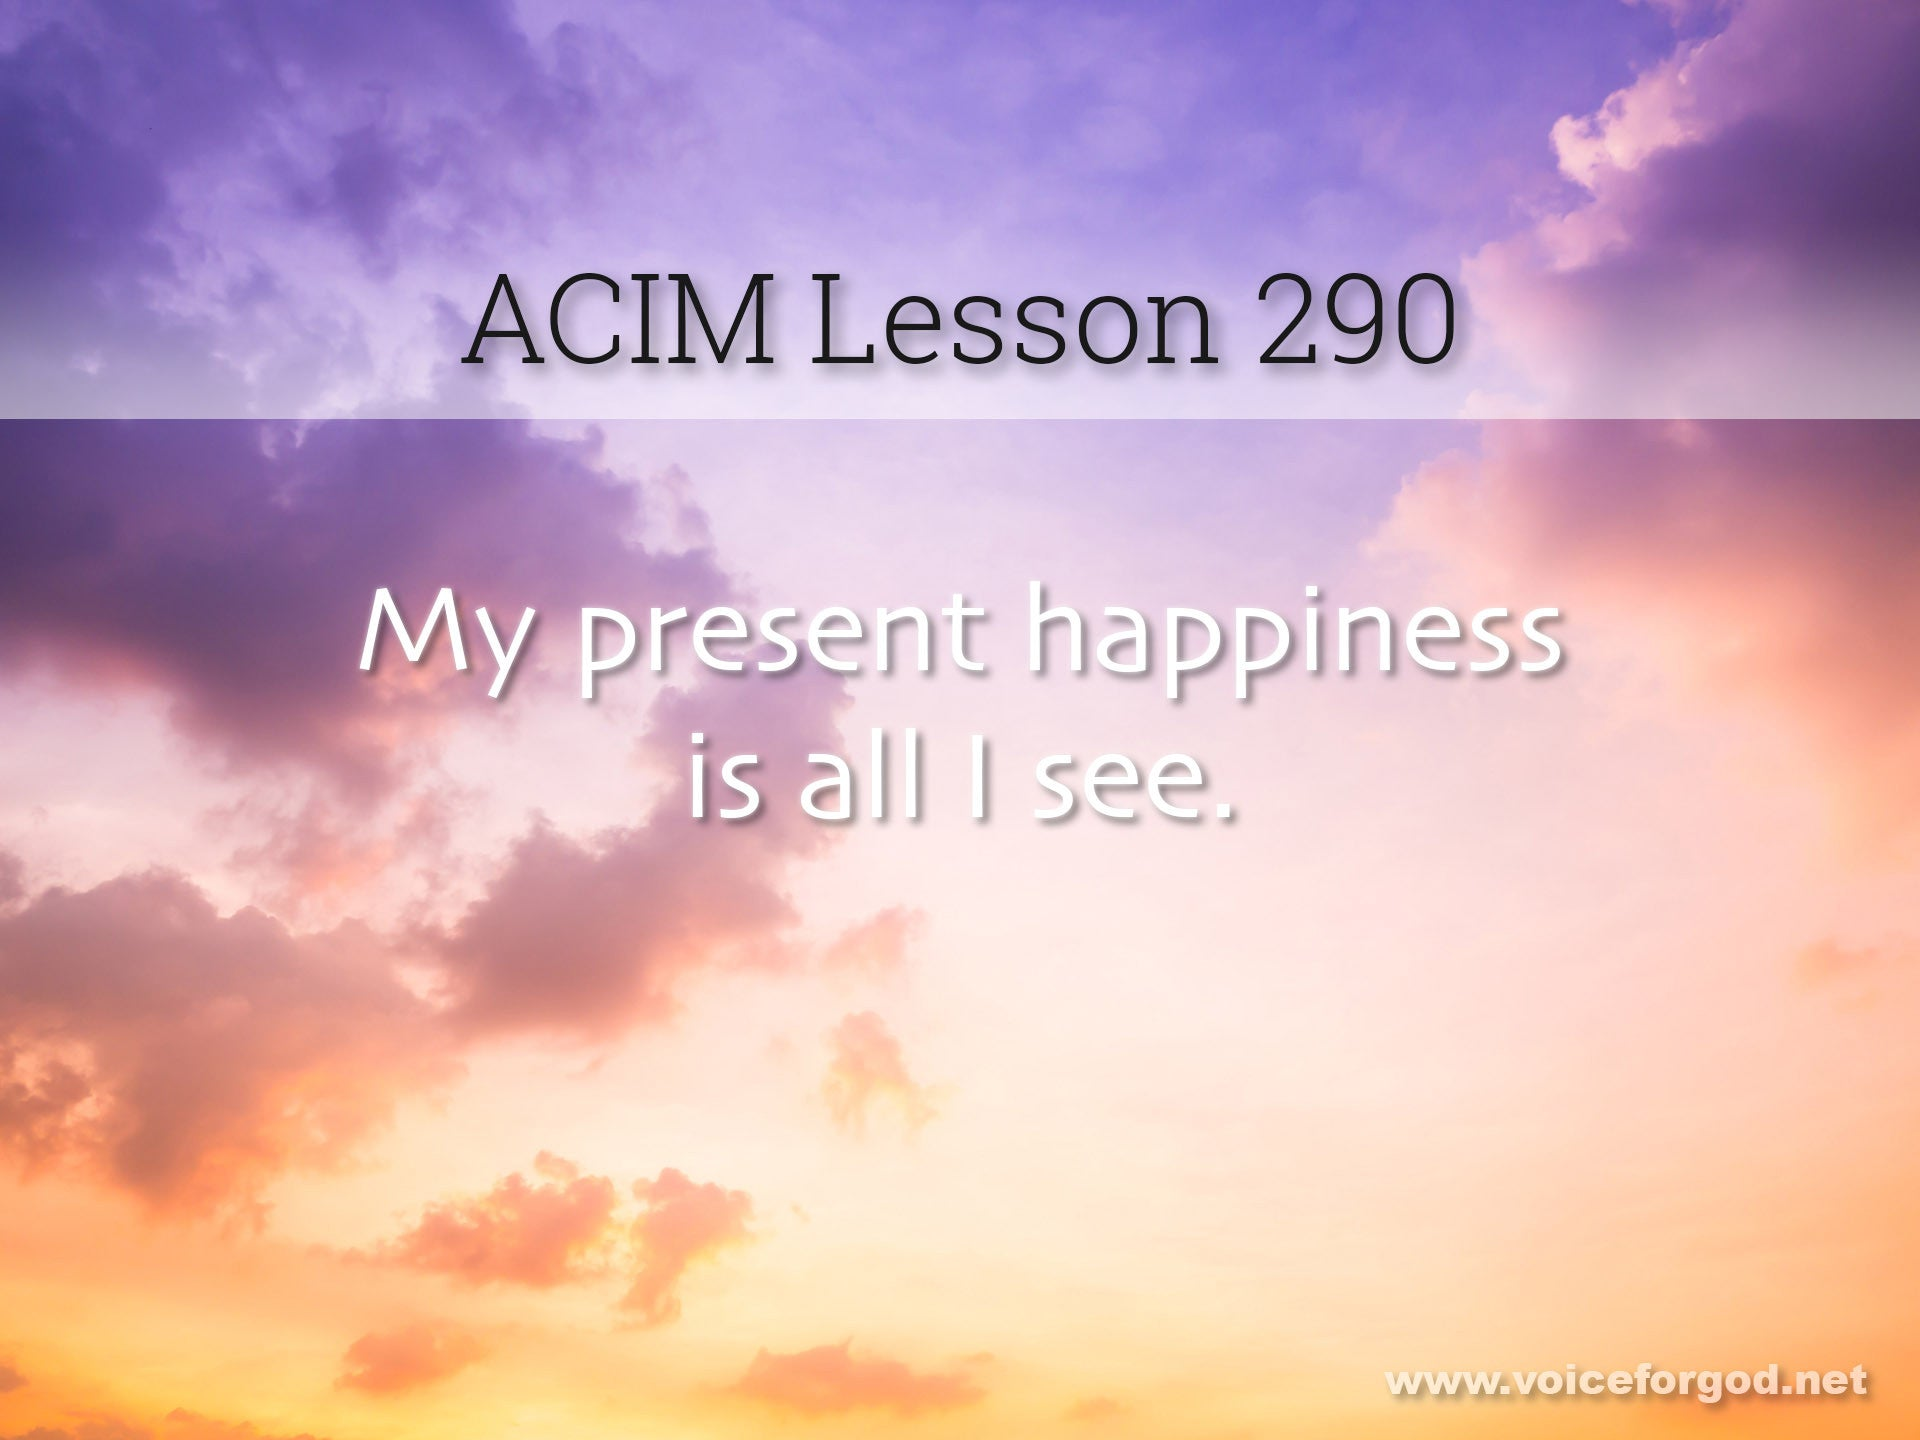 ACIM Lesson 290 - A Course in Miracles Workbook Lesson 290